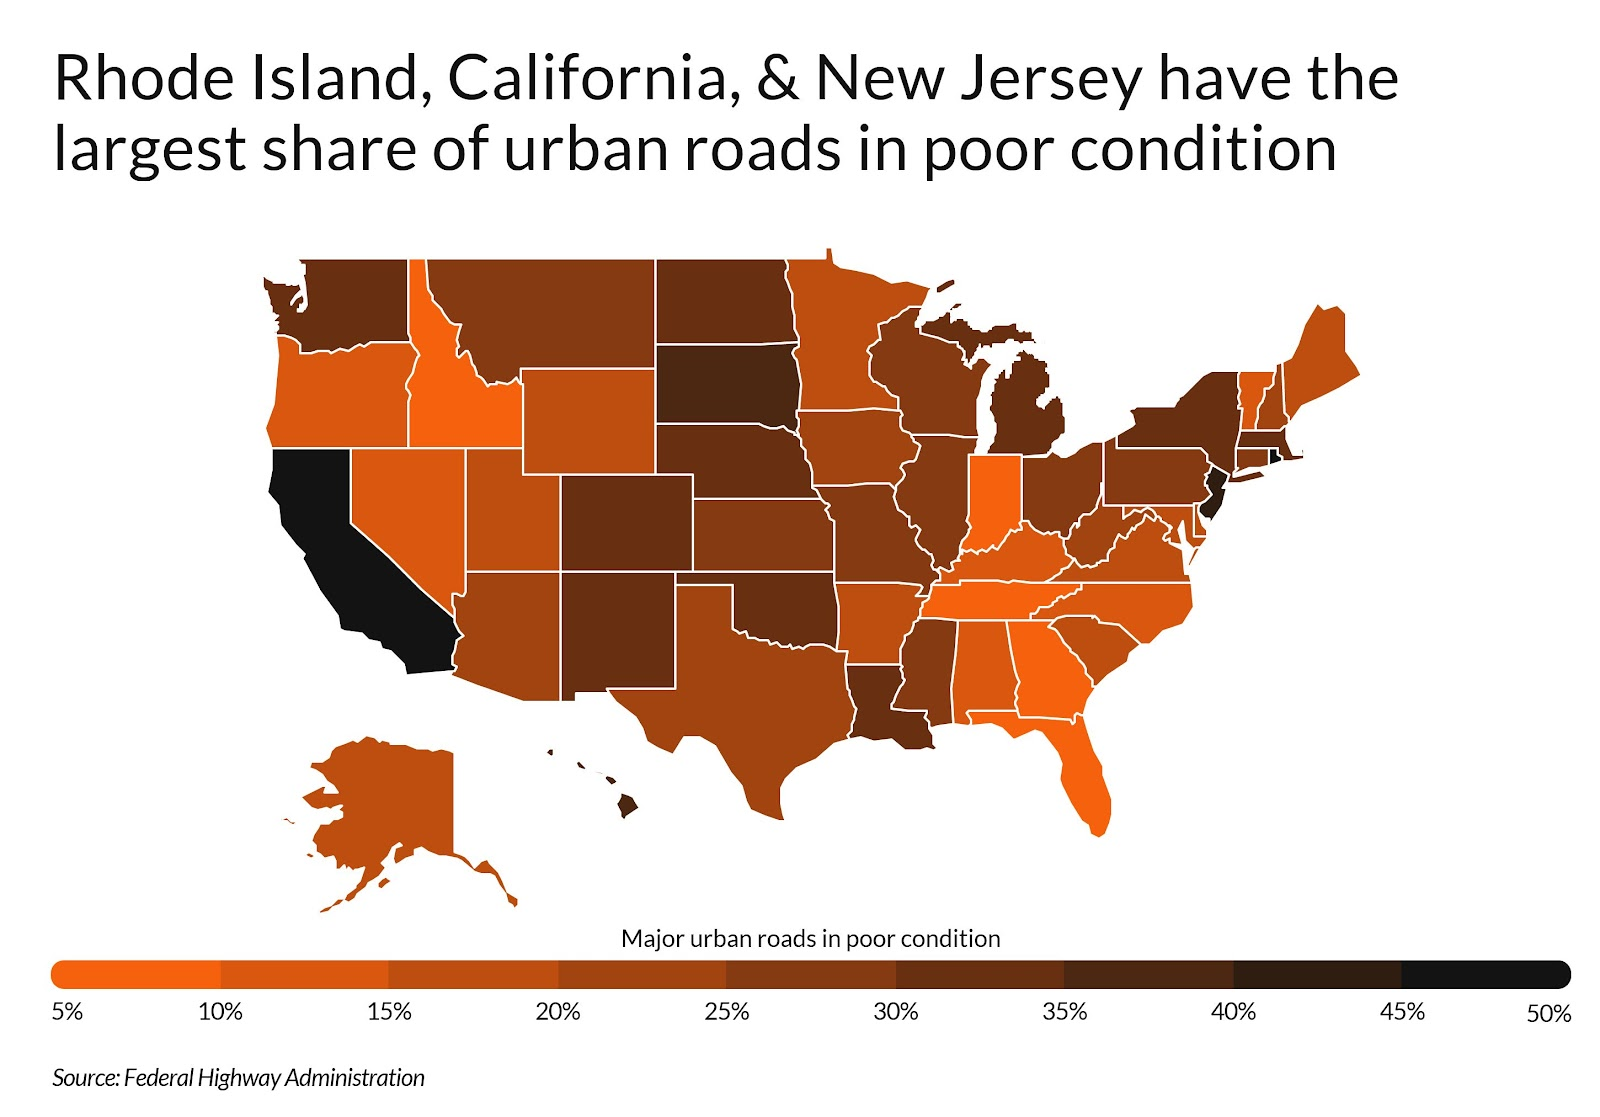 Heatmap showing states with largest share of urban roads in poor condition